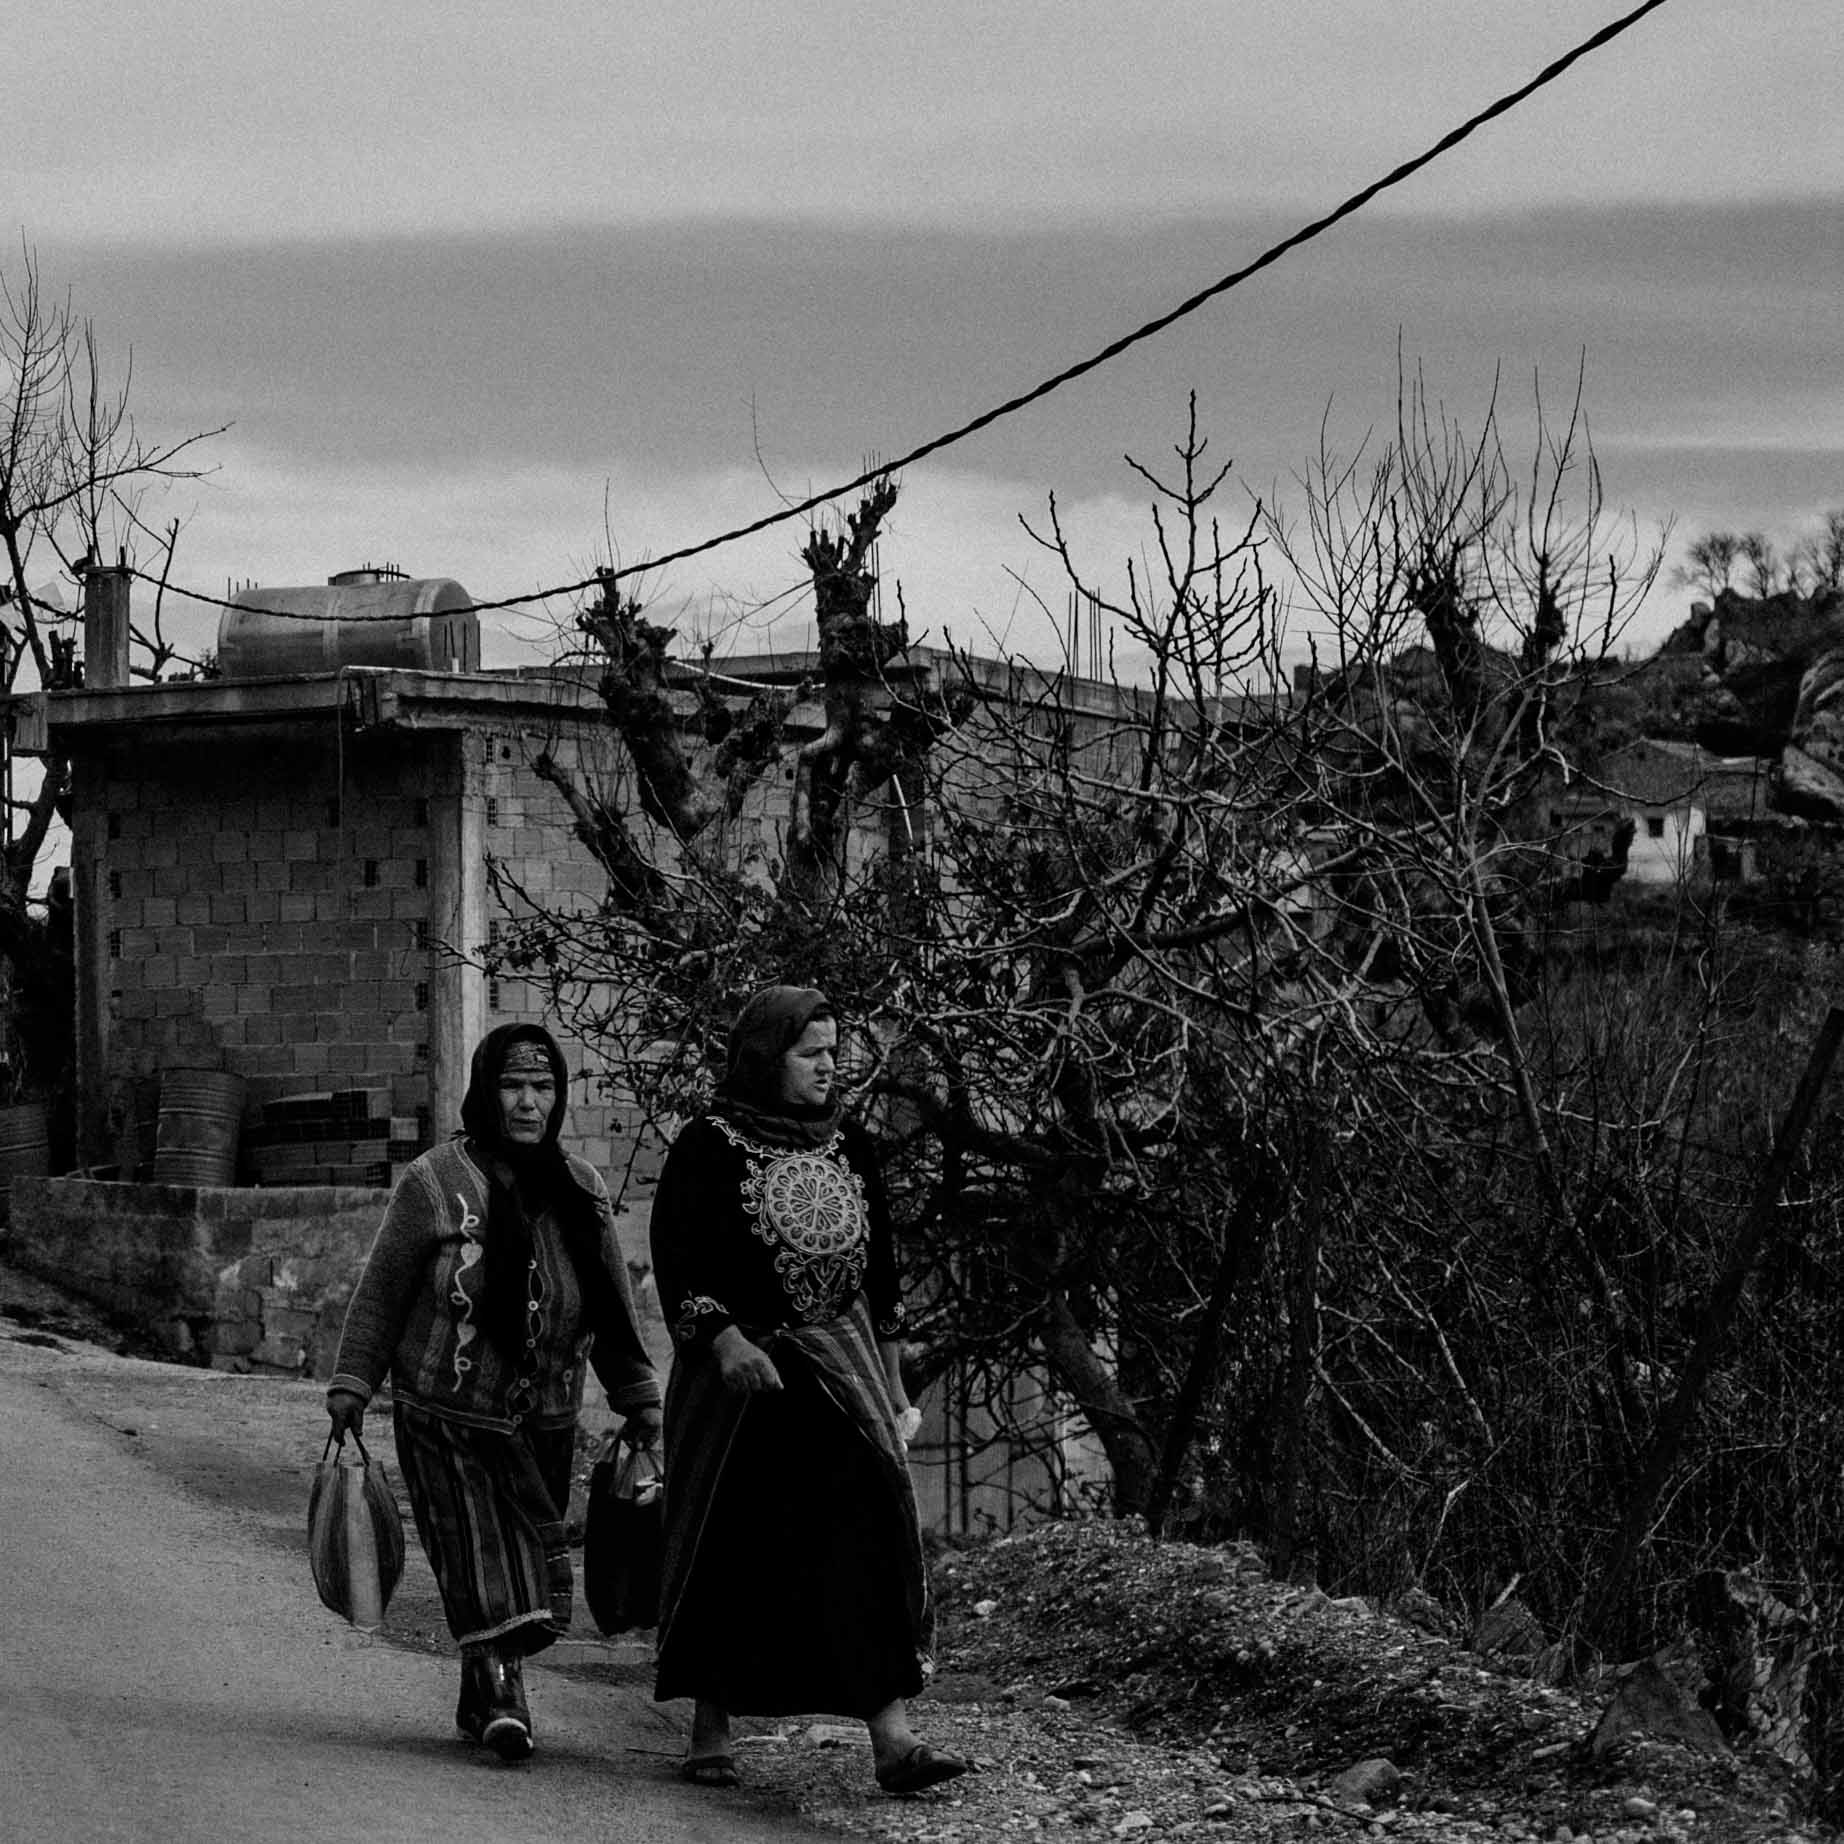 Femmes marchant sur le bas côté - Women walking on the road side